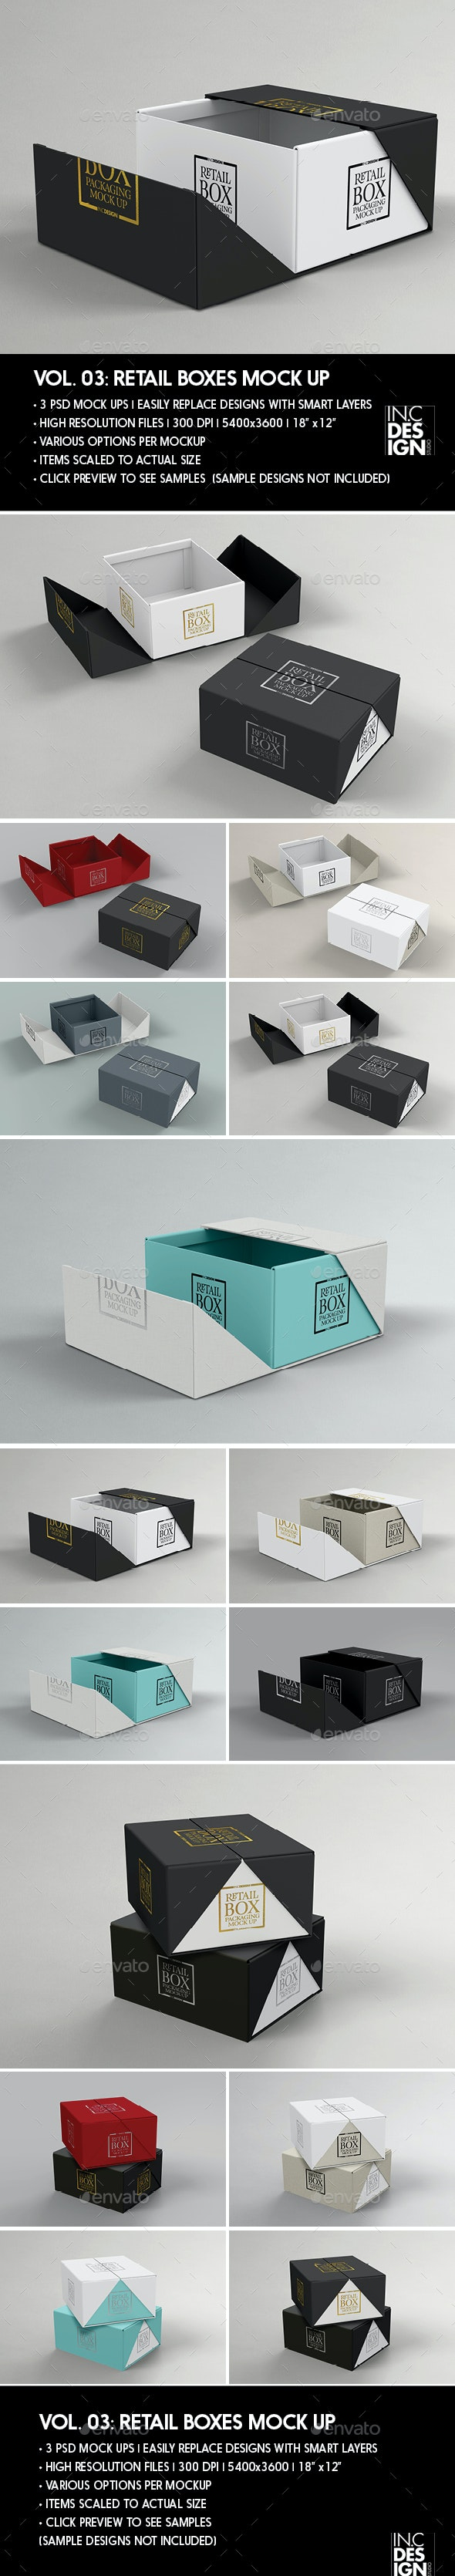 Retail Boxes Vol.3: Fold Up Box Packaging Mock Ups - Packaging Product Mock-Ups